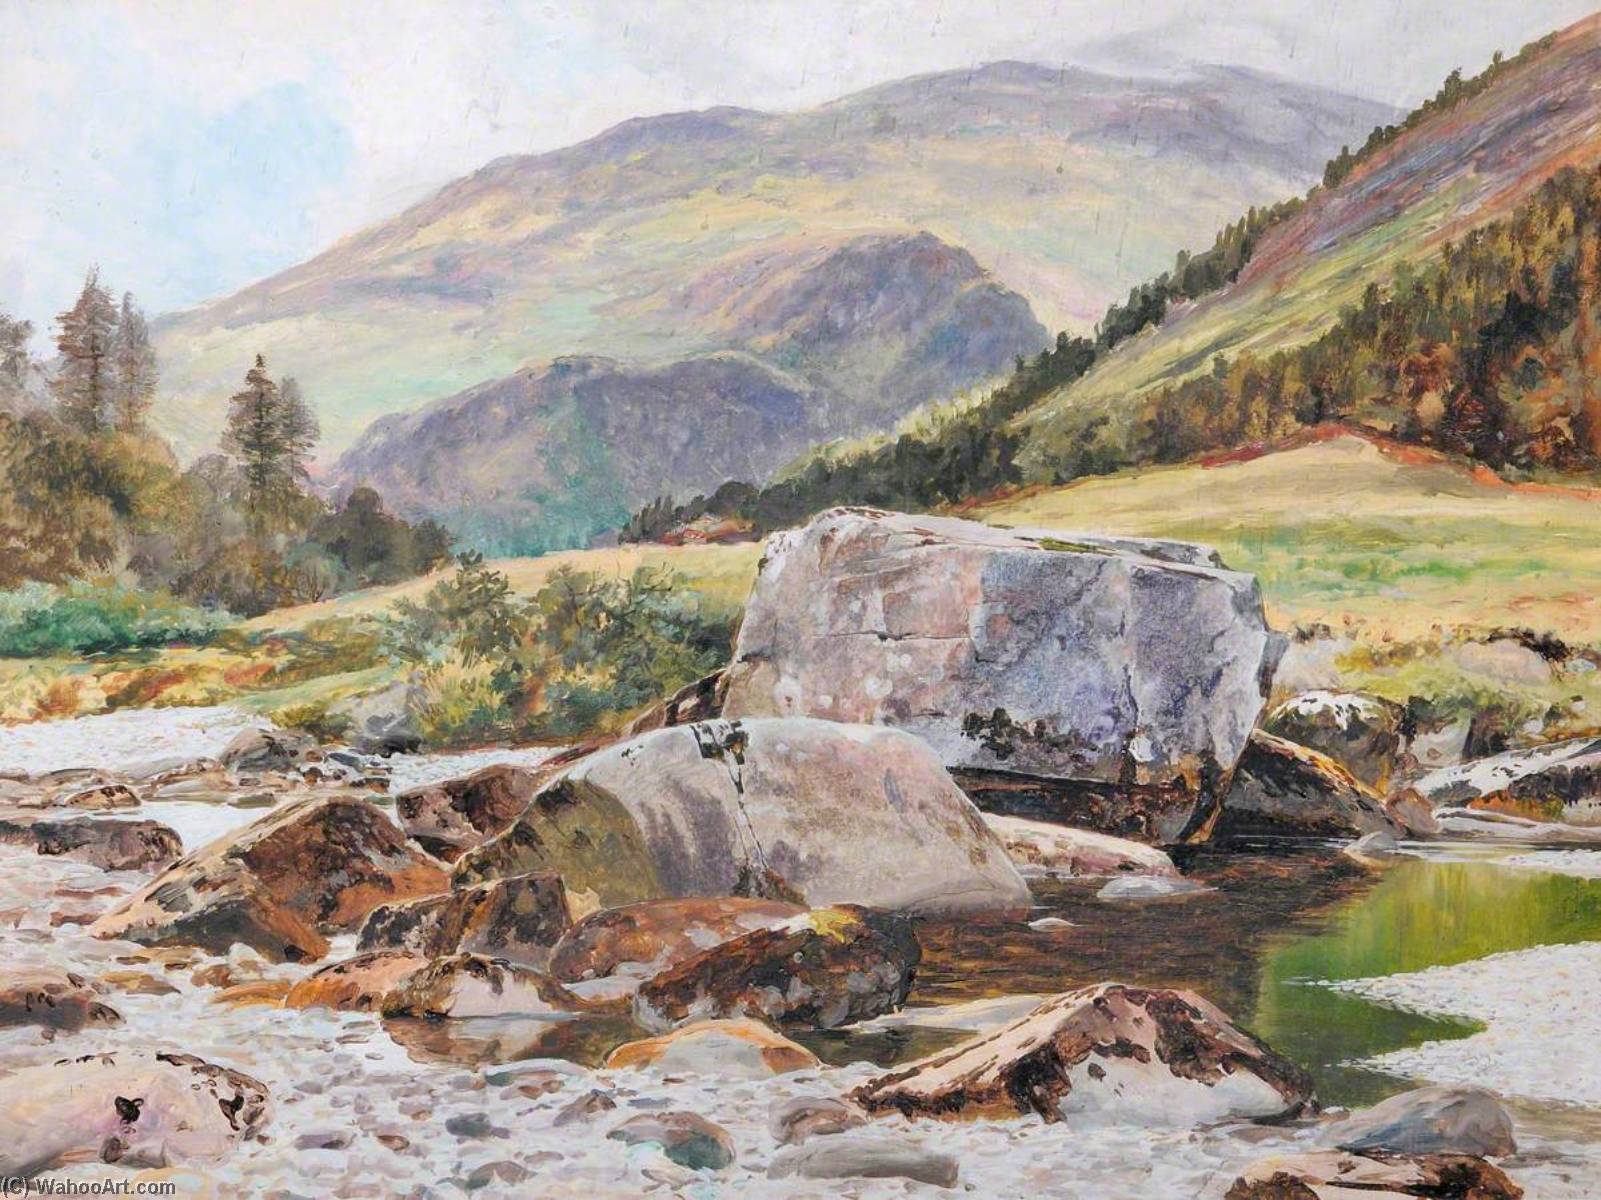 Rocks sur le glaslyn Rivière, 1883 de Frederick William Hayes | Copie Tableau | WahooArt.com